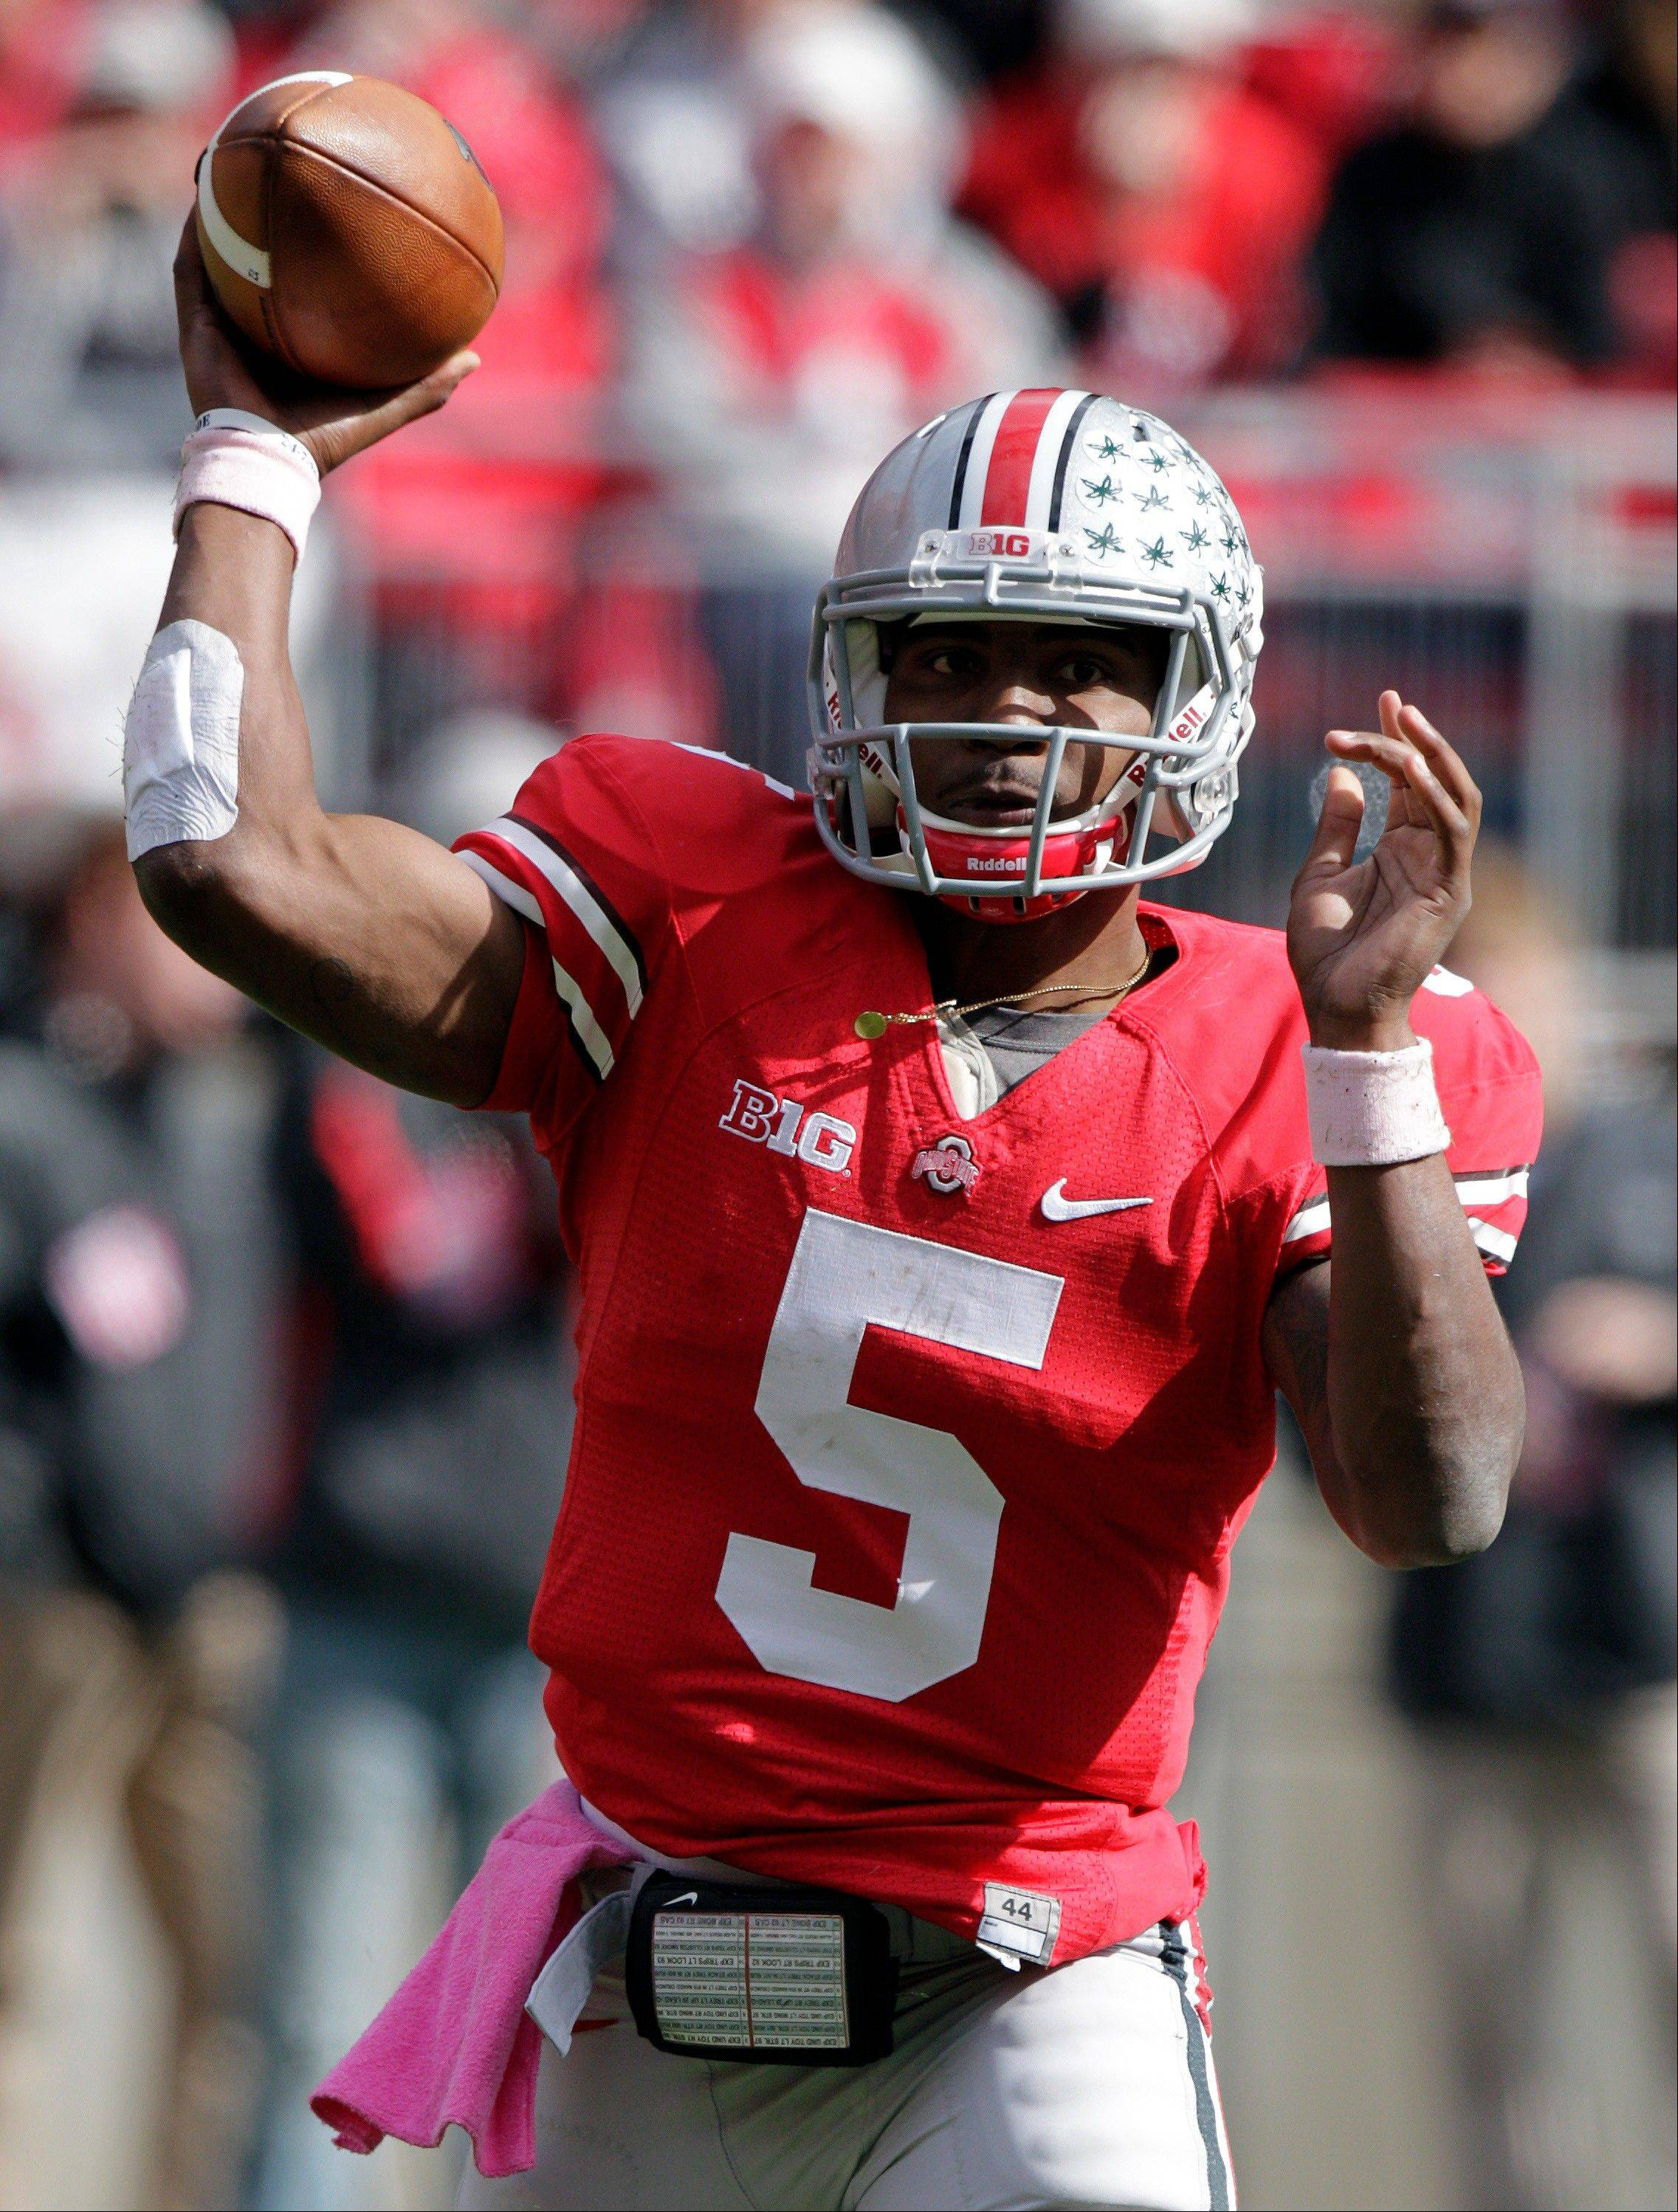 Ohio State quarterback Braxton Miller appeared to be seriously hurt in last week's 29-22 overtime win against Purdue but returned to practice this week and seems to be fine